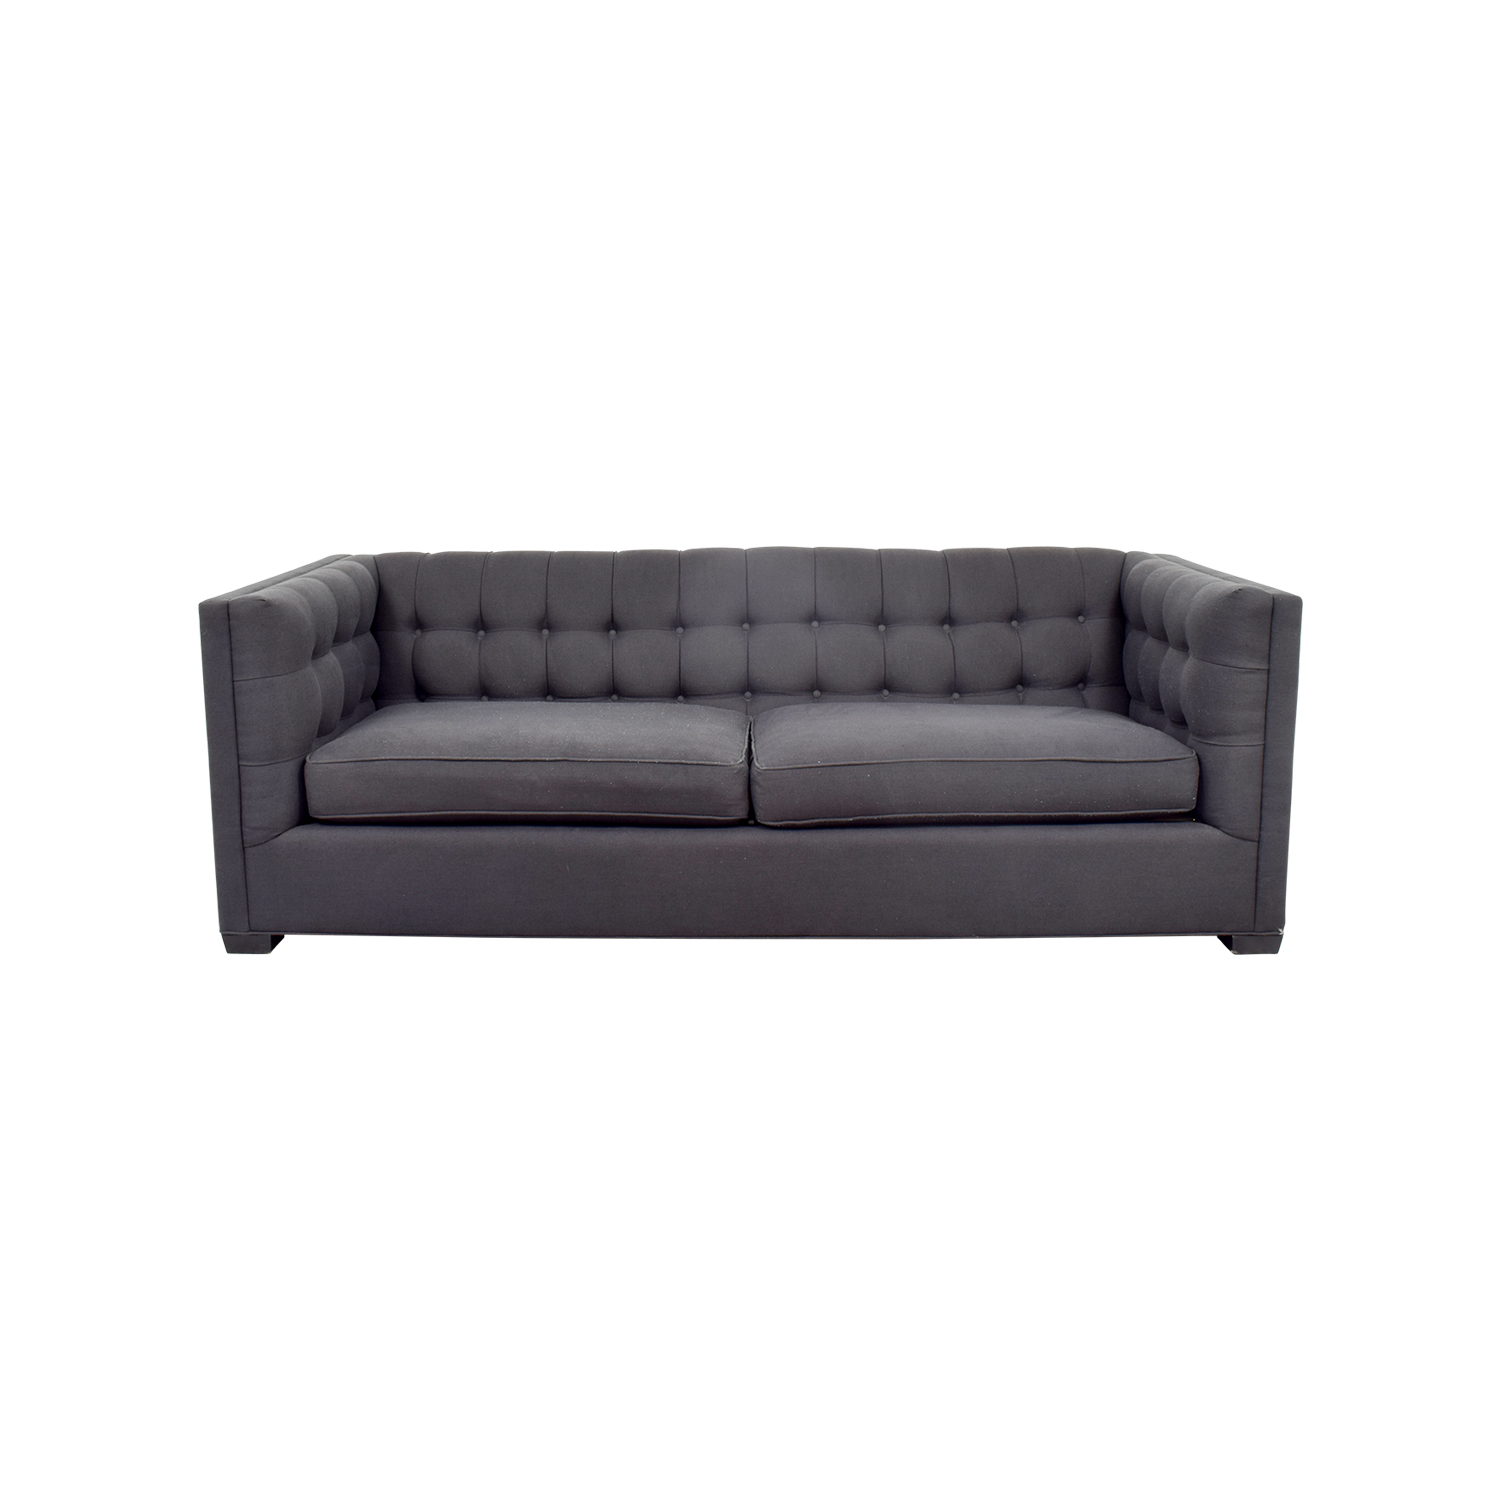 Abc carpet and home abc carpet and home black tufted sofa coupon